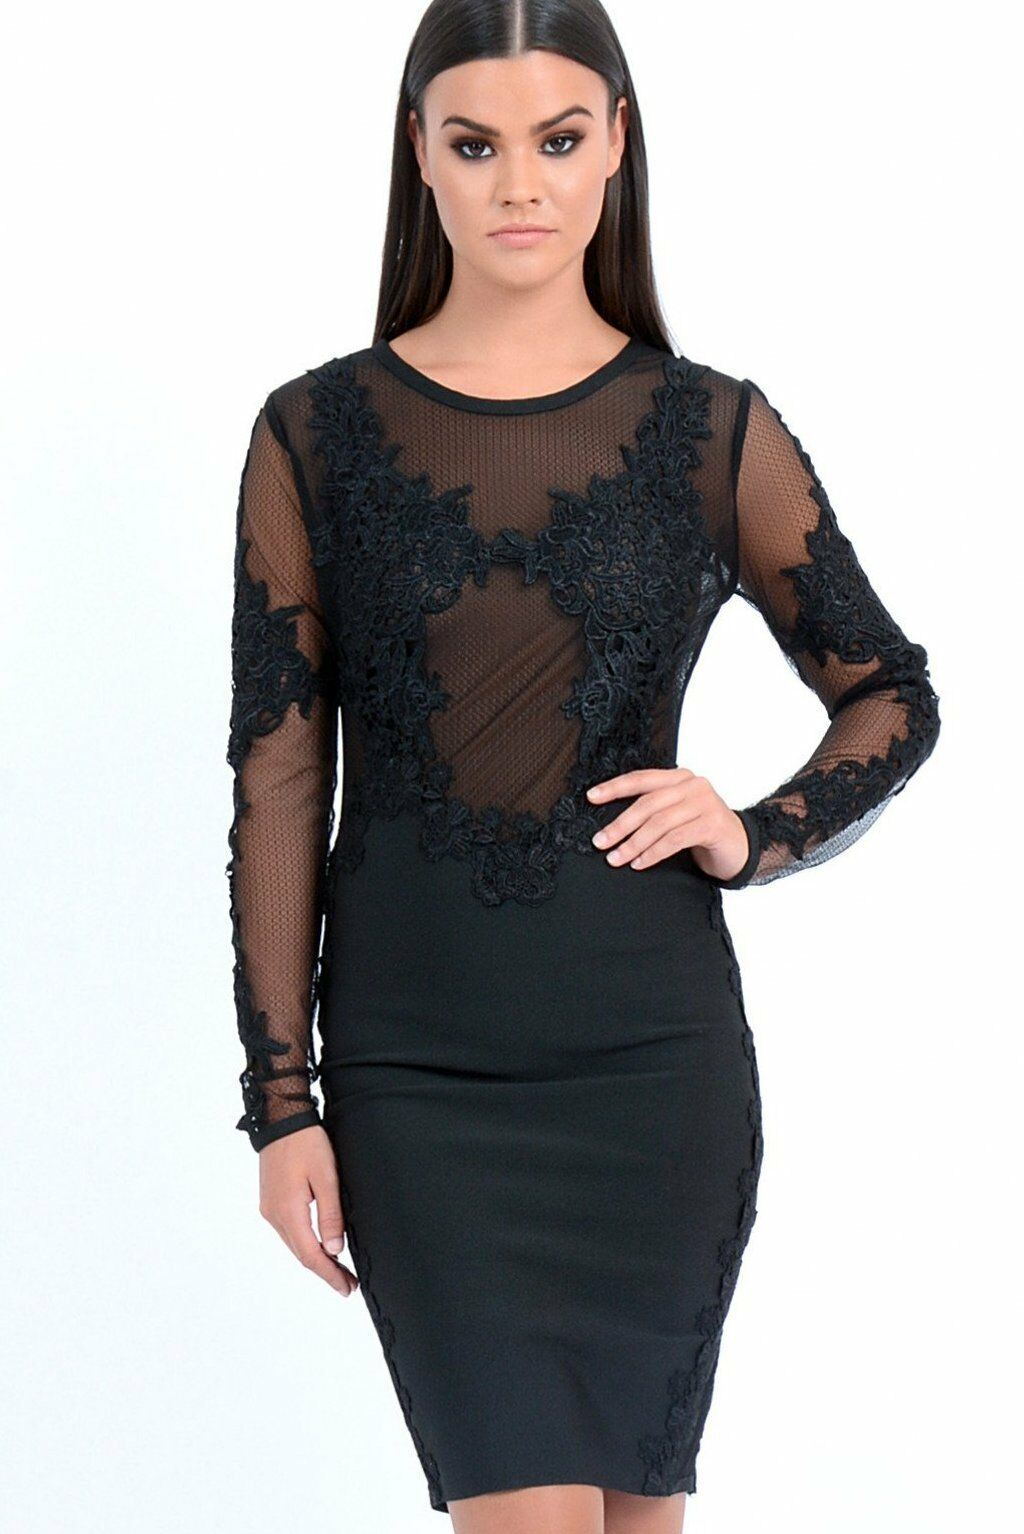 BRAND NEW Forever Unique Woherren Talisa Lace Embroiderot Dress - schwarz (Small)